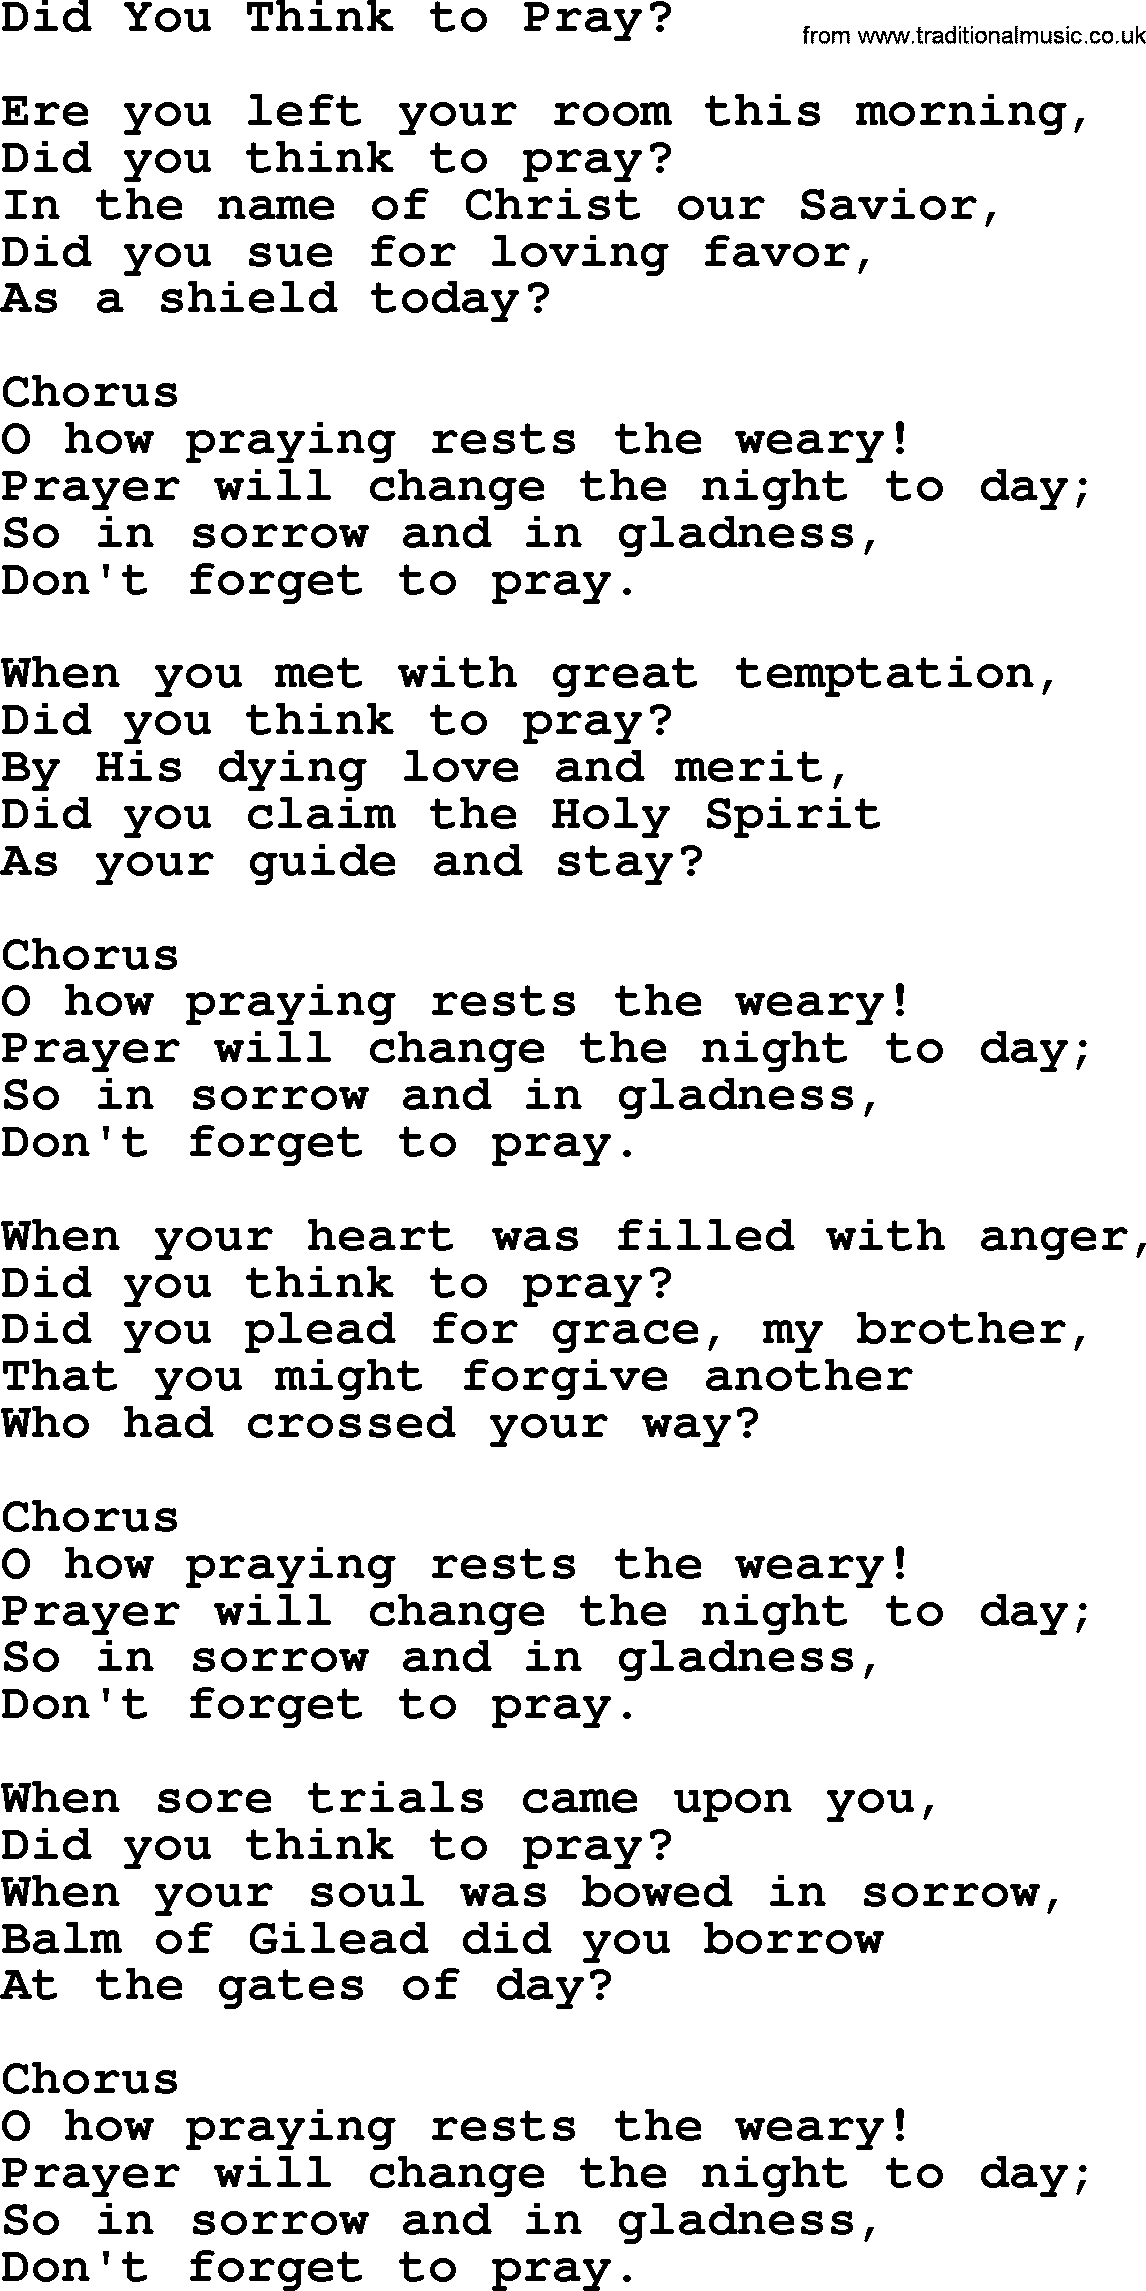 Baptist Hymnal, Christian Song: Did You Think To Pray- lyrics with